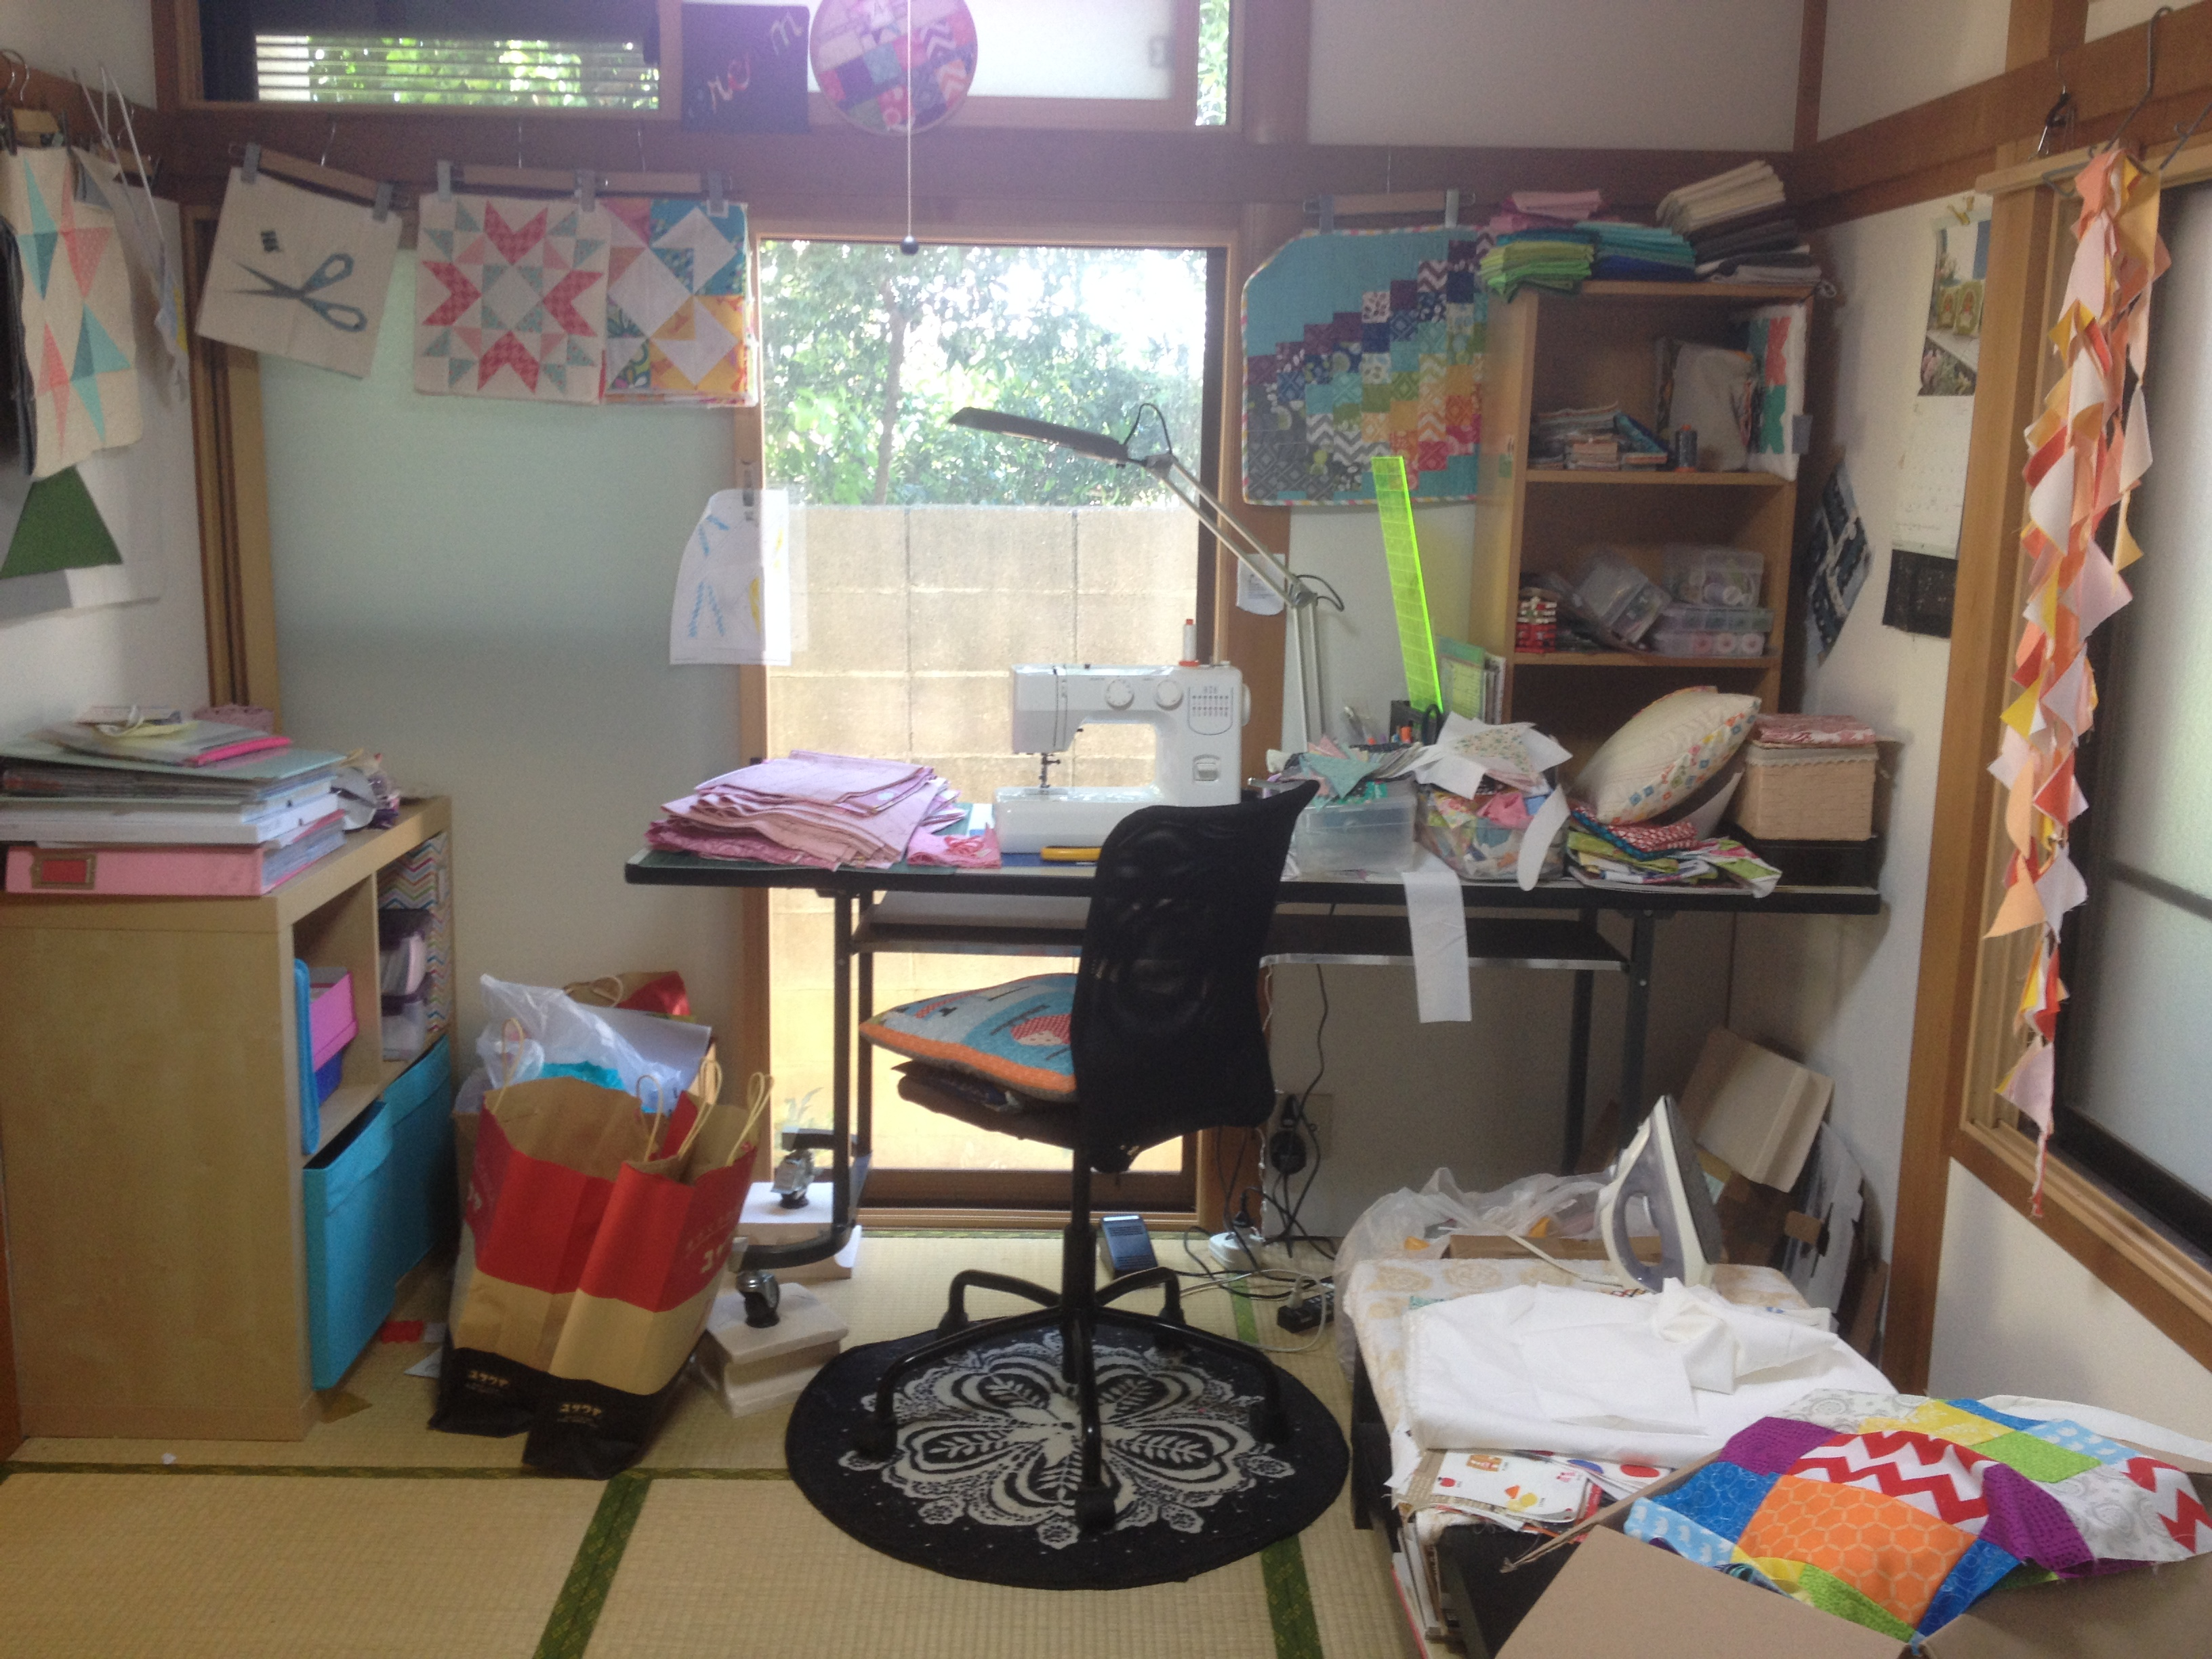 Messy sewing space